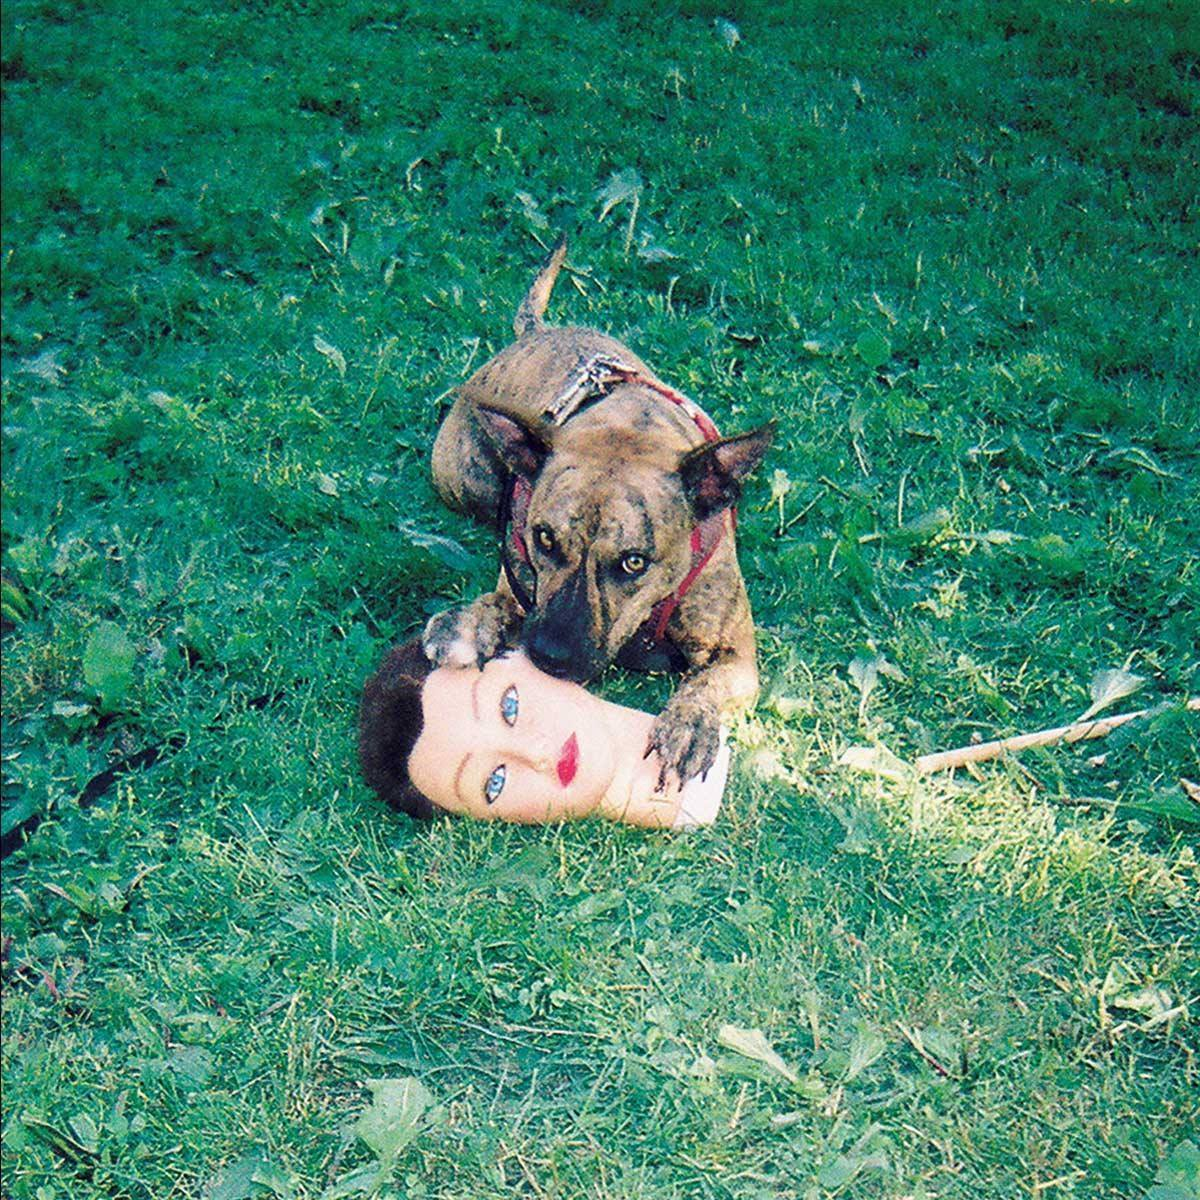 On Cody, Joyce Manor Get More Epic but Still Have Room to Grow